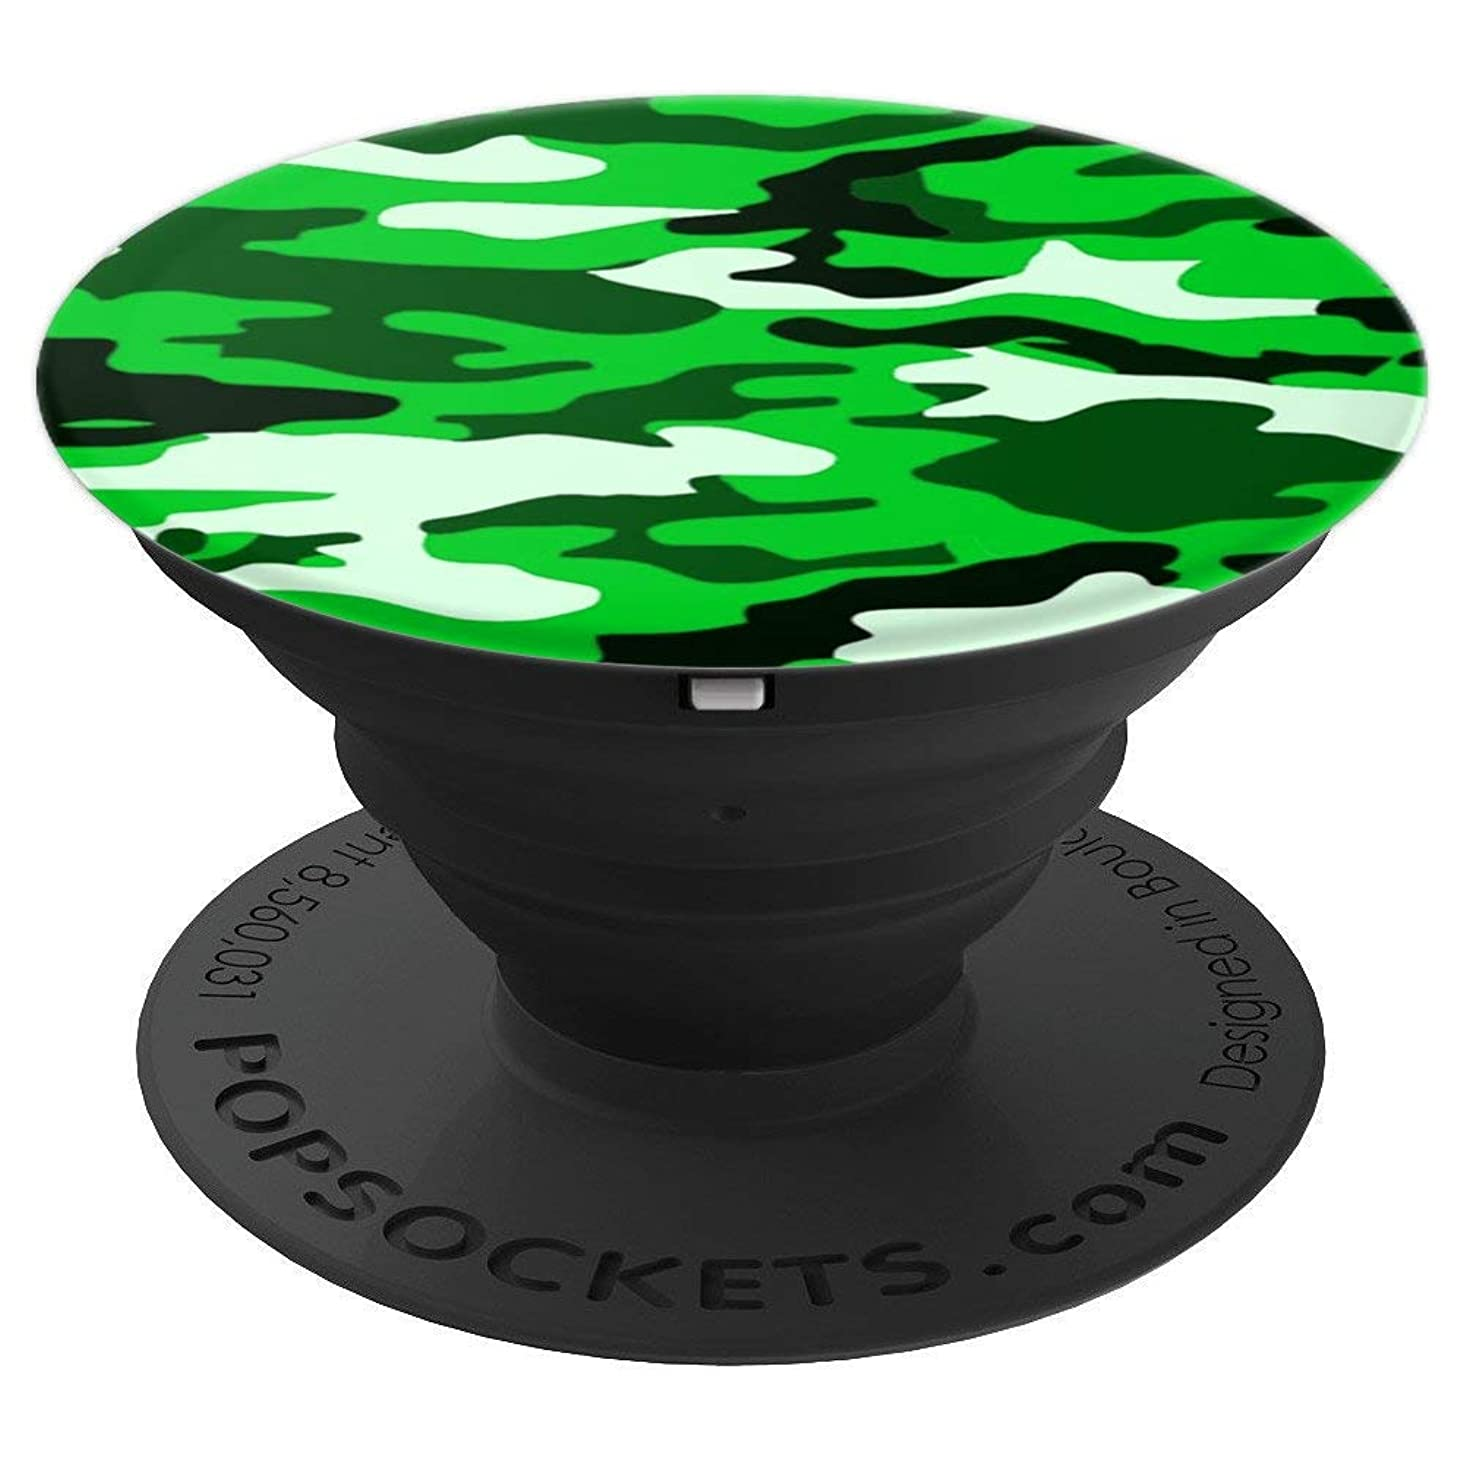 Green Camo For Boys, Black Camouflage For Men, Camoflage - PopSockets Grip and Stand for Phones and Tablets